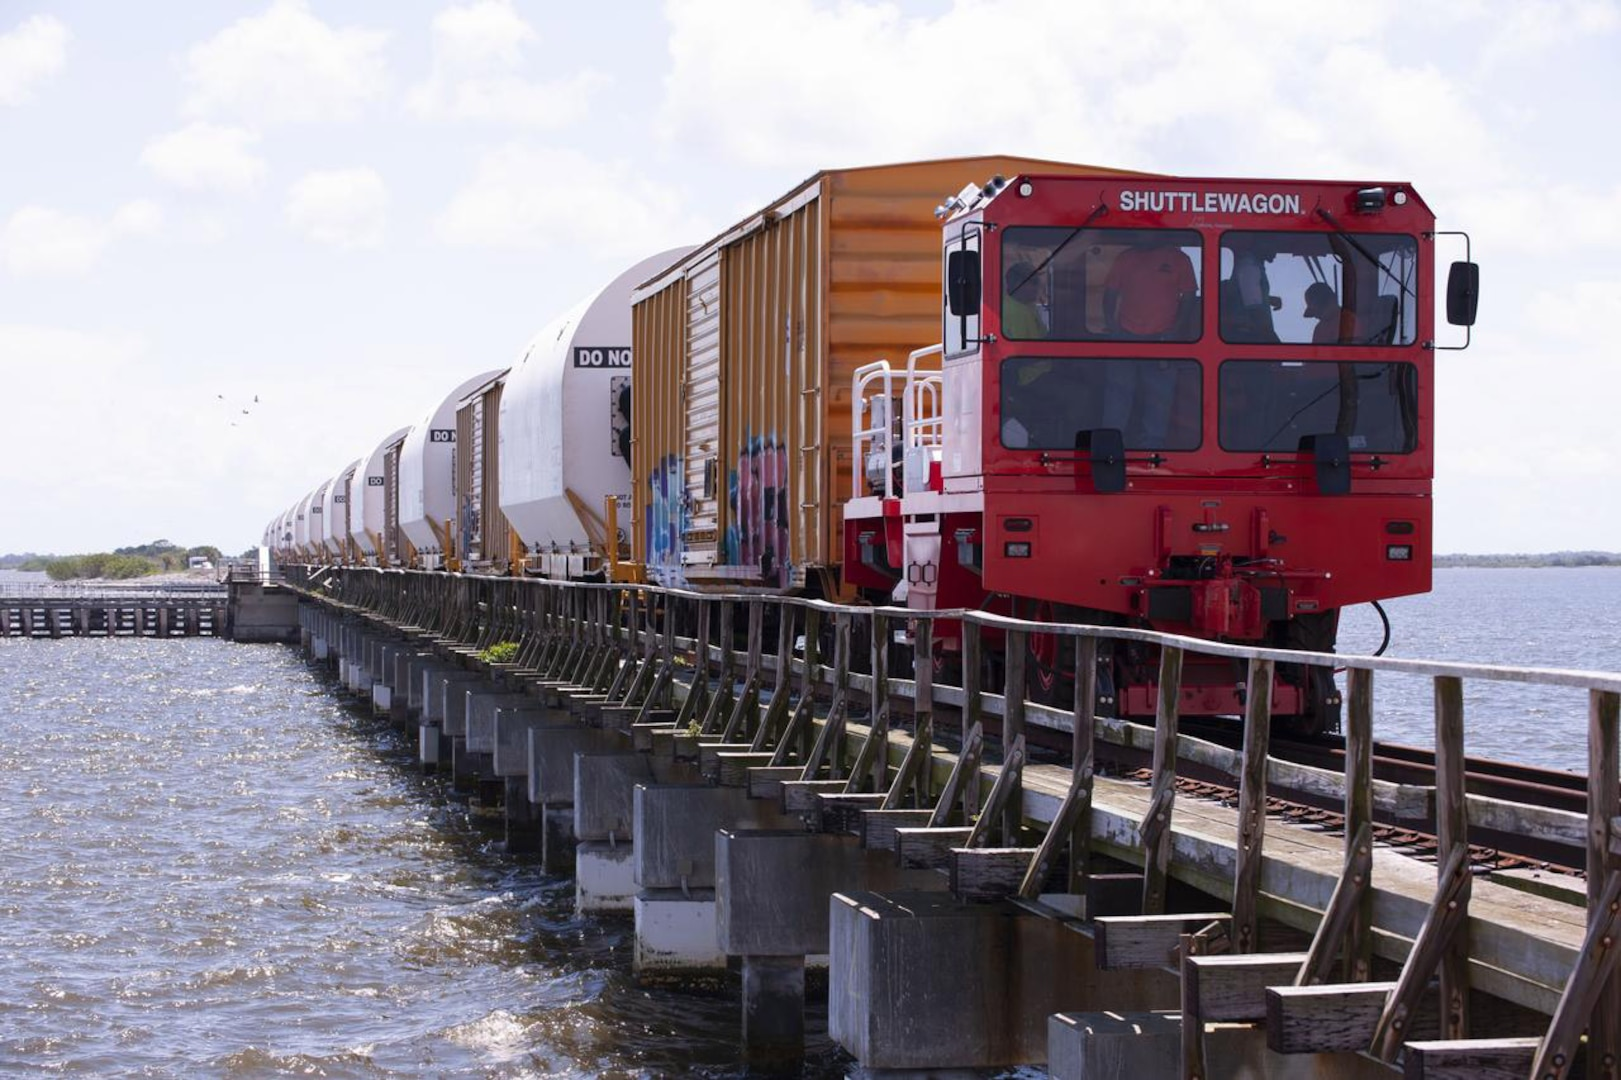 Photo of a train carrying a load over a bridge.